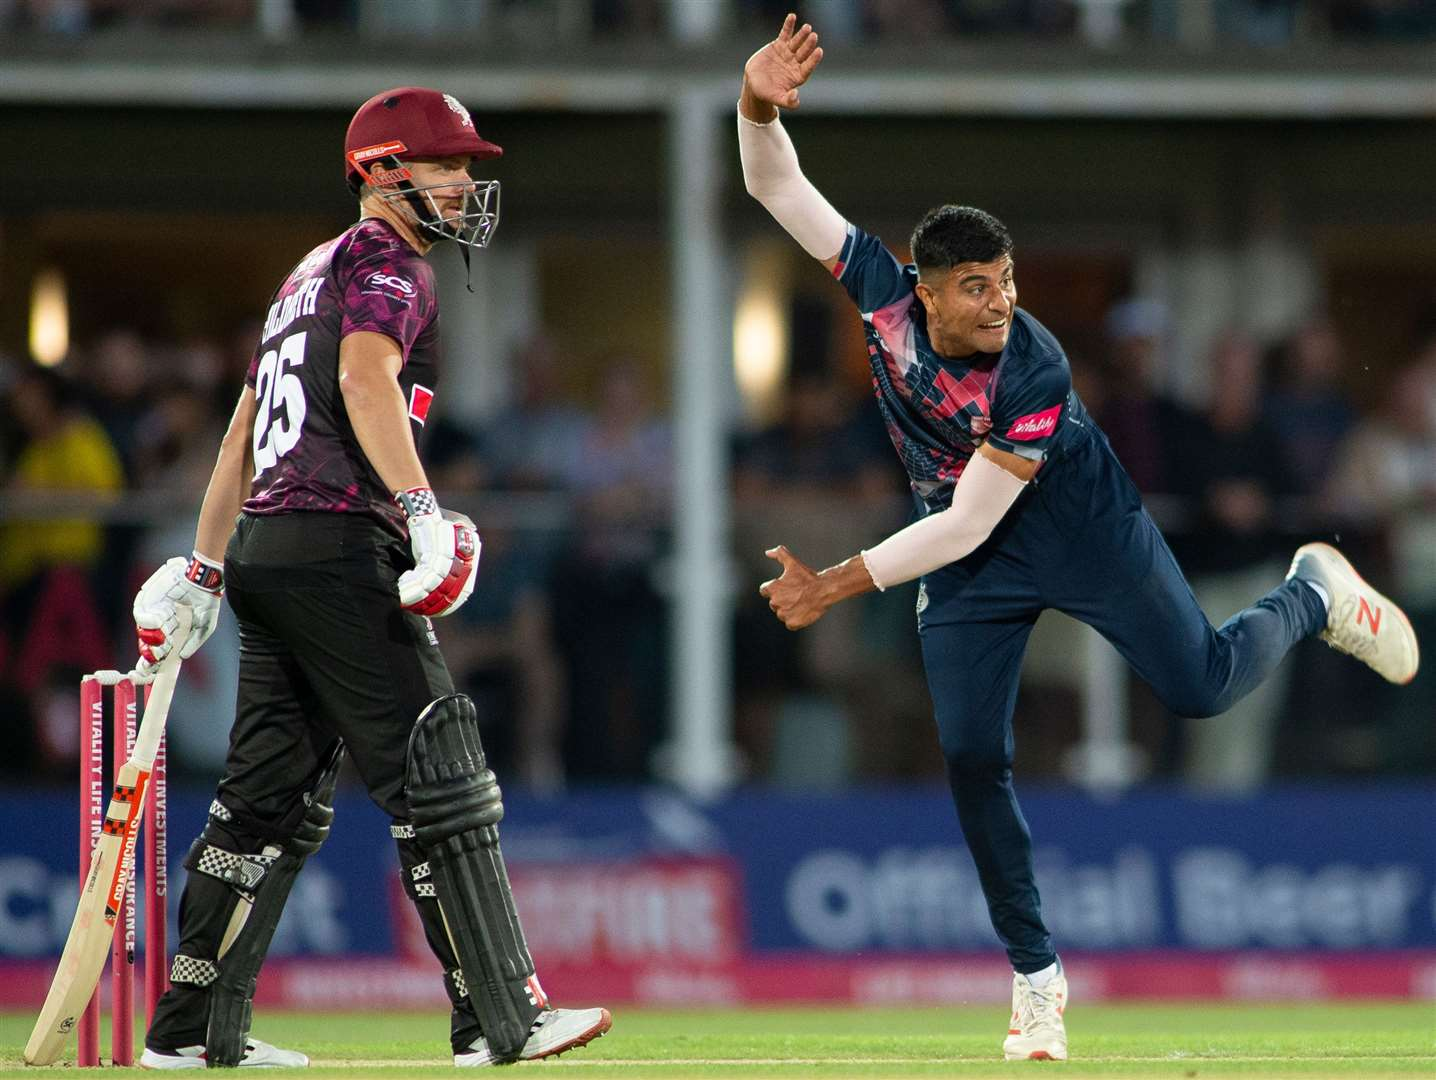 Kent's Imran Qayyum took figures of 5-21 against Somerset. Picture: Ady Kerry